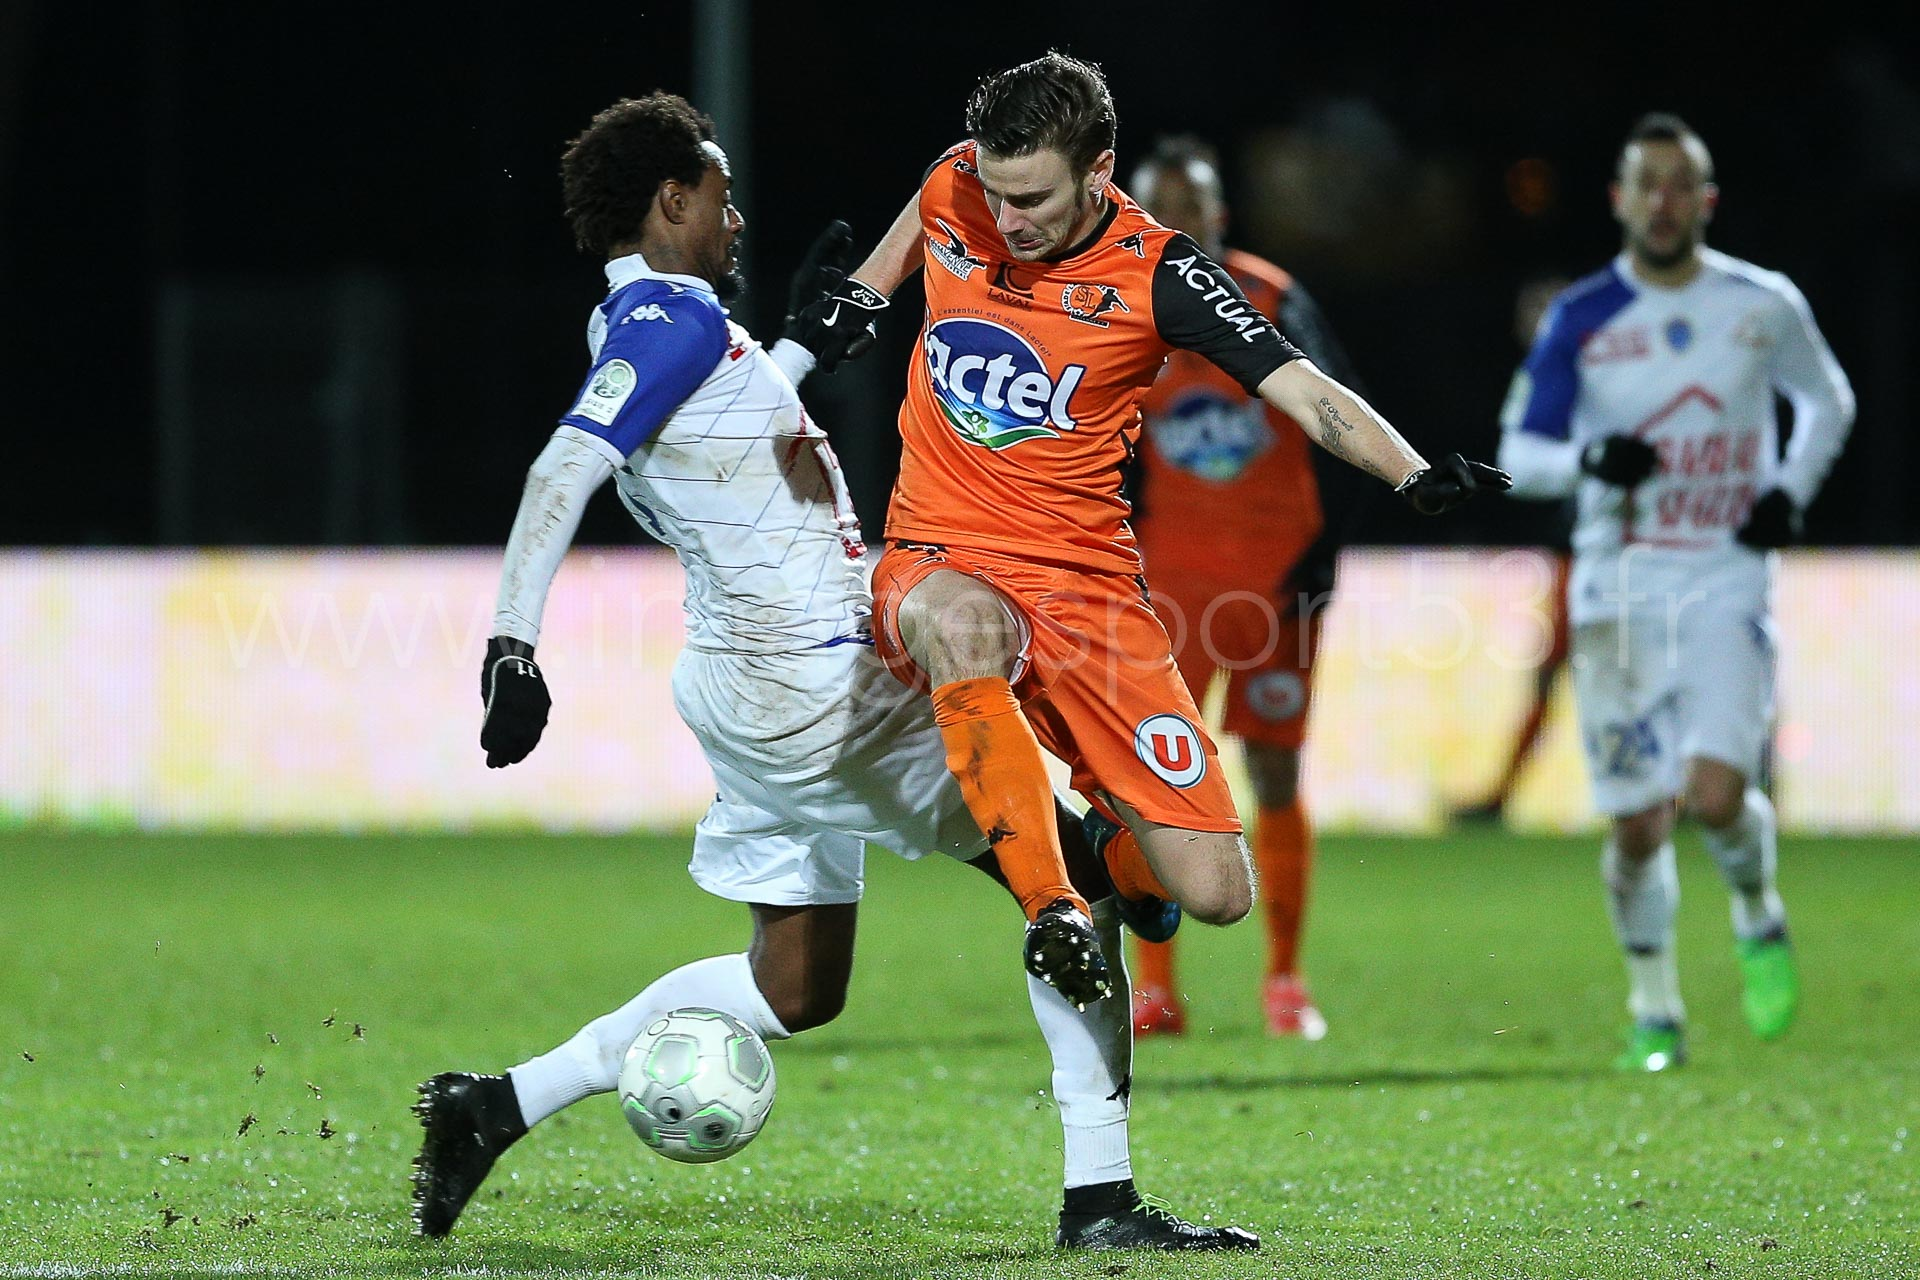 NG-Ligue2-1415-J22-Laval-Troyes_11